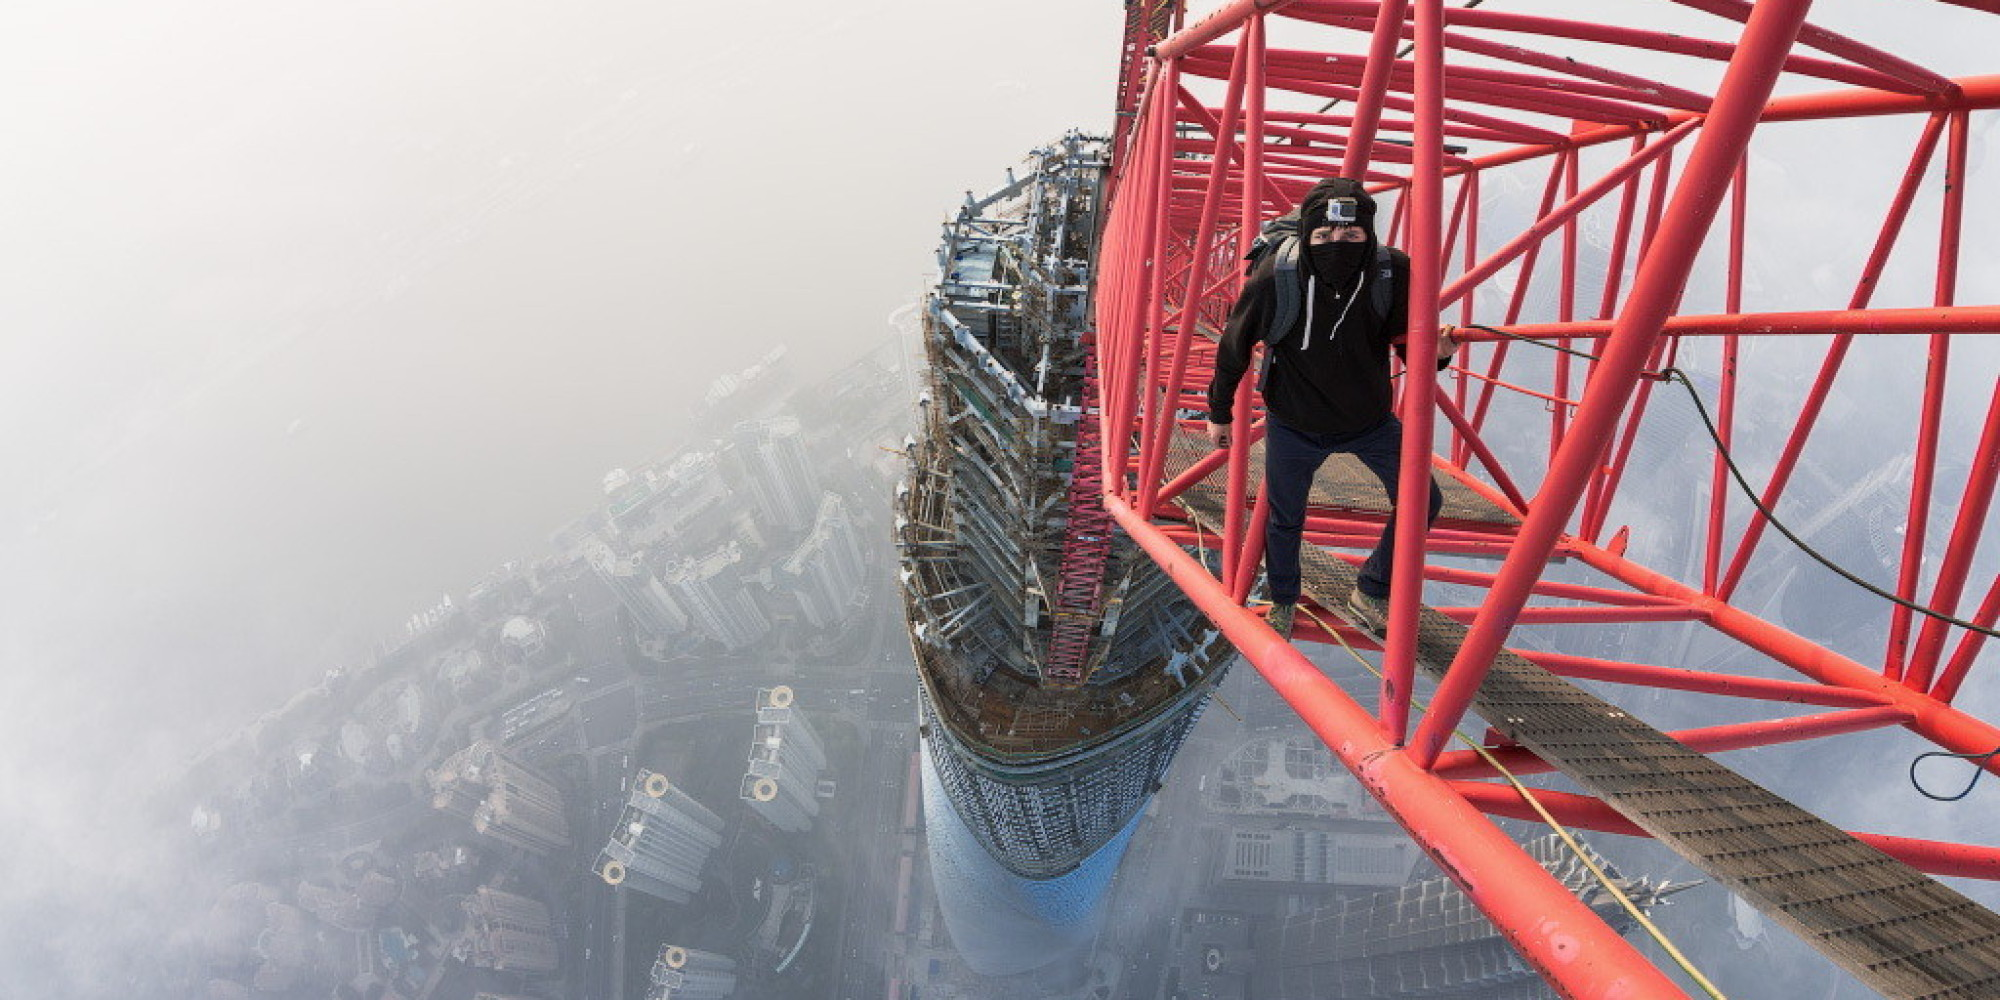 The Story Behind That Insane Shanghai Tower Climb Huffpost